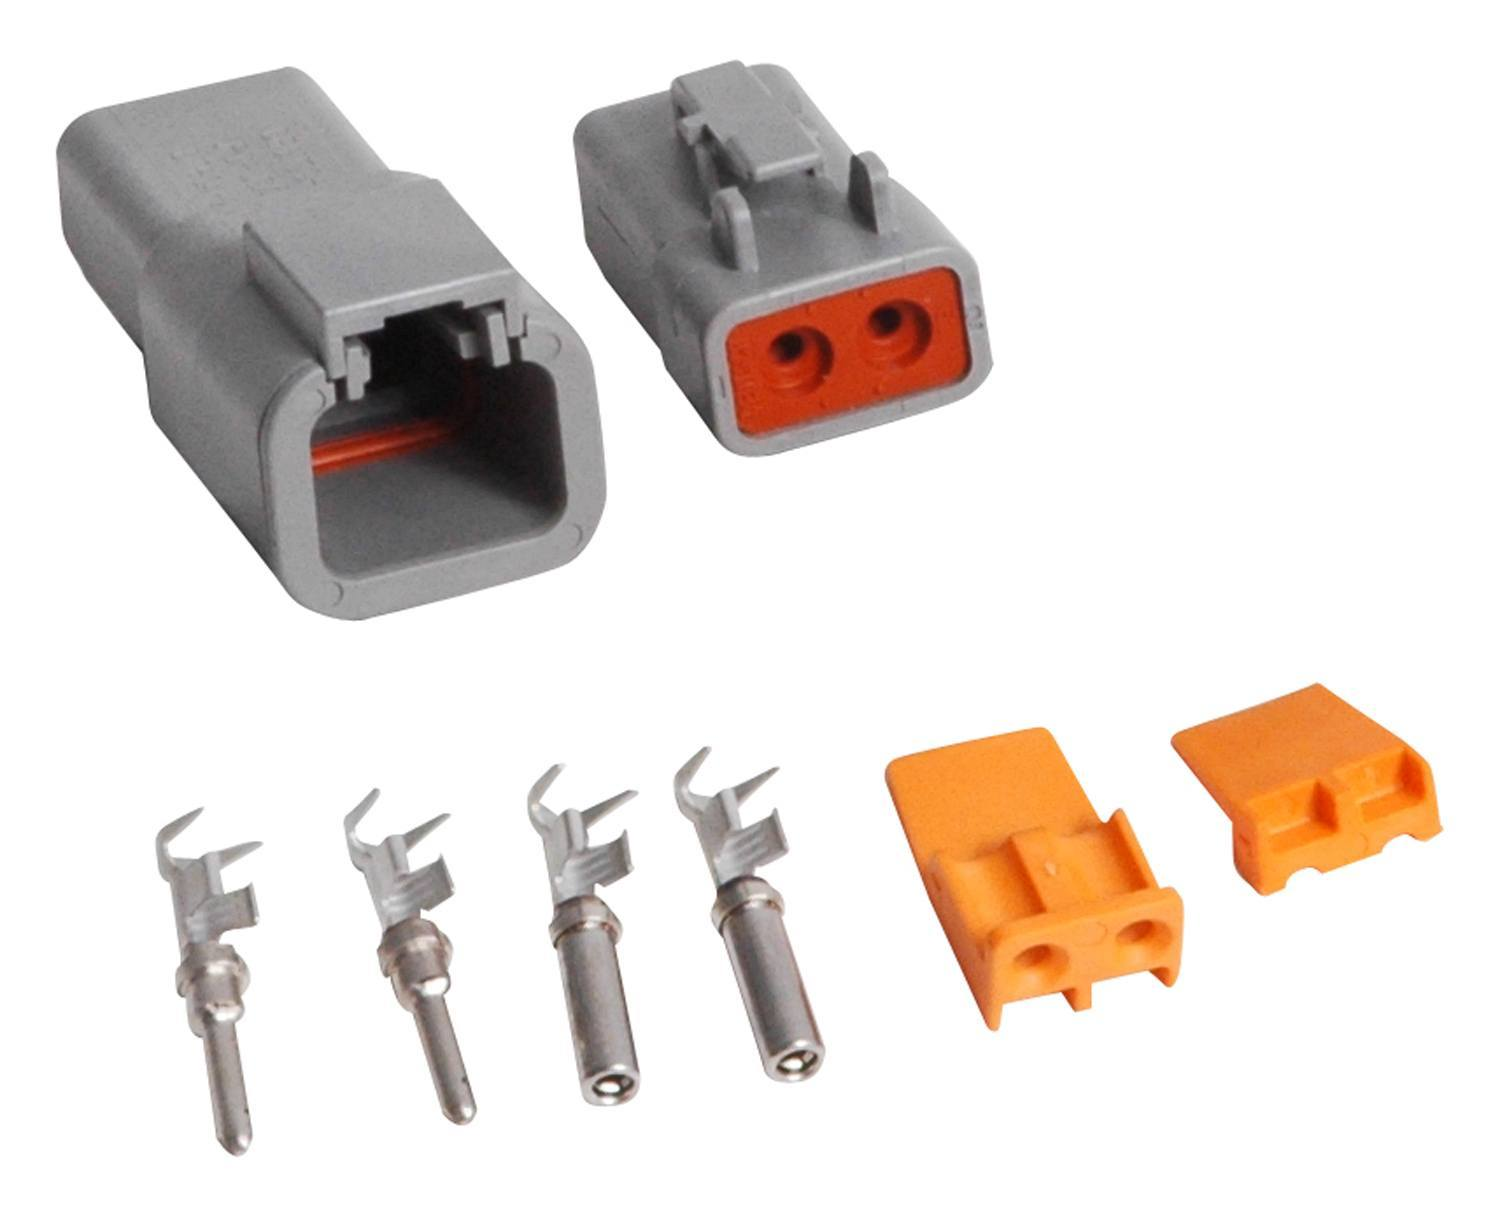 MSD Ignition 8184 Electrical Connector, Deutsch Connector, 2 Pin, 12-14 Gauge, Kit